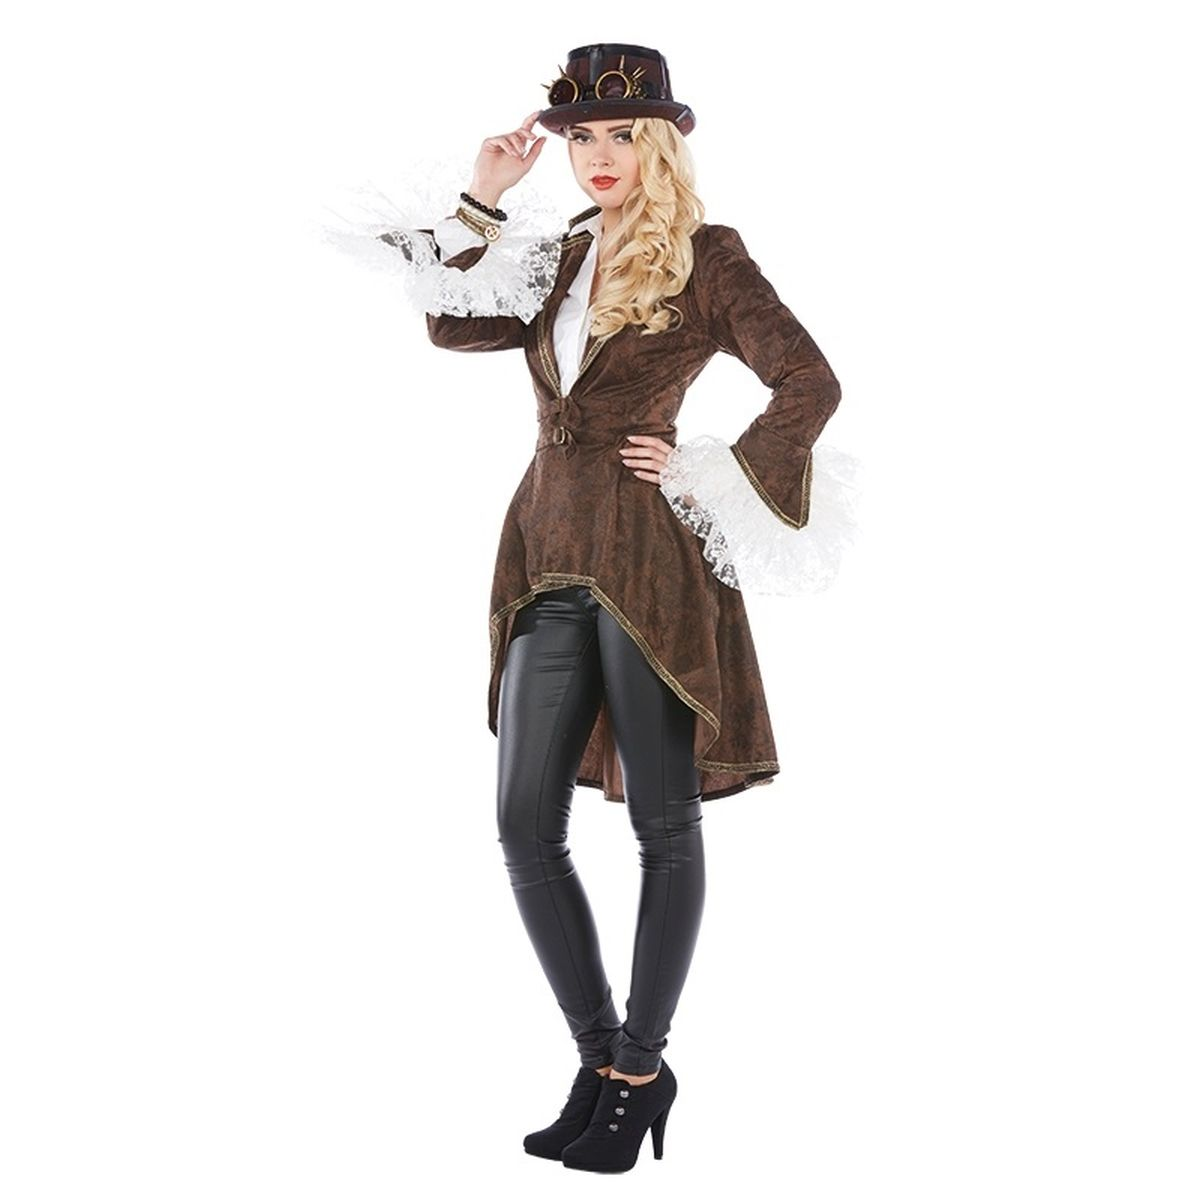 mot damen kost m steampunk western mantel karneval fasching ebay. Black Bedroom Furniture Sets. Home Design Ideas